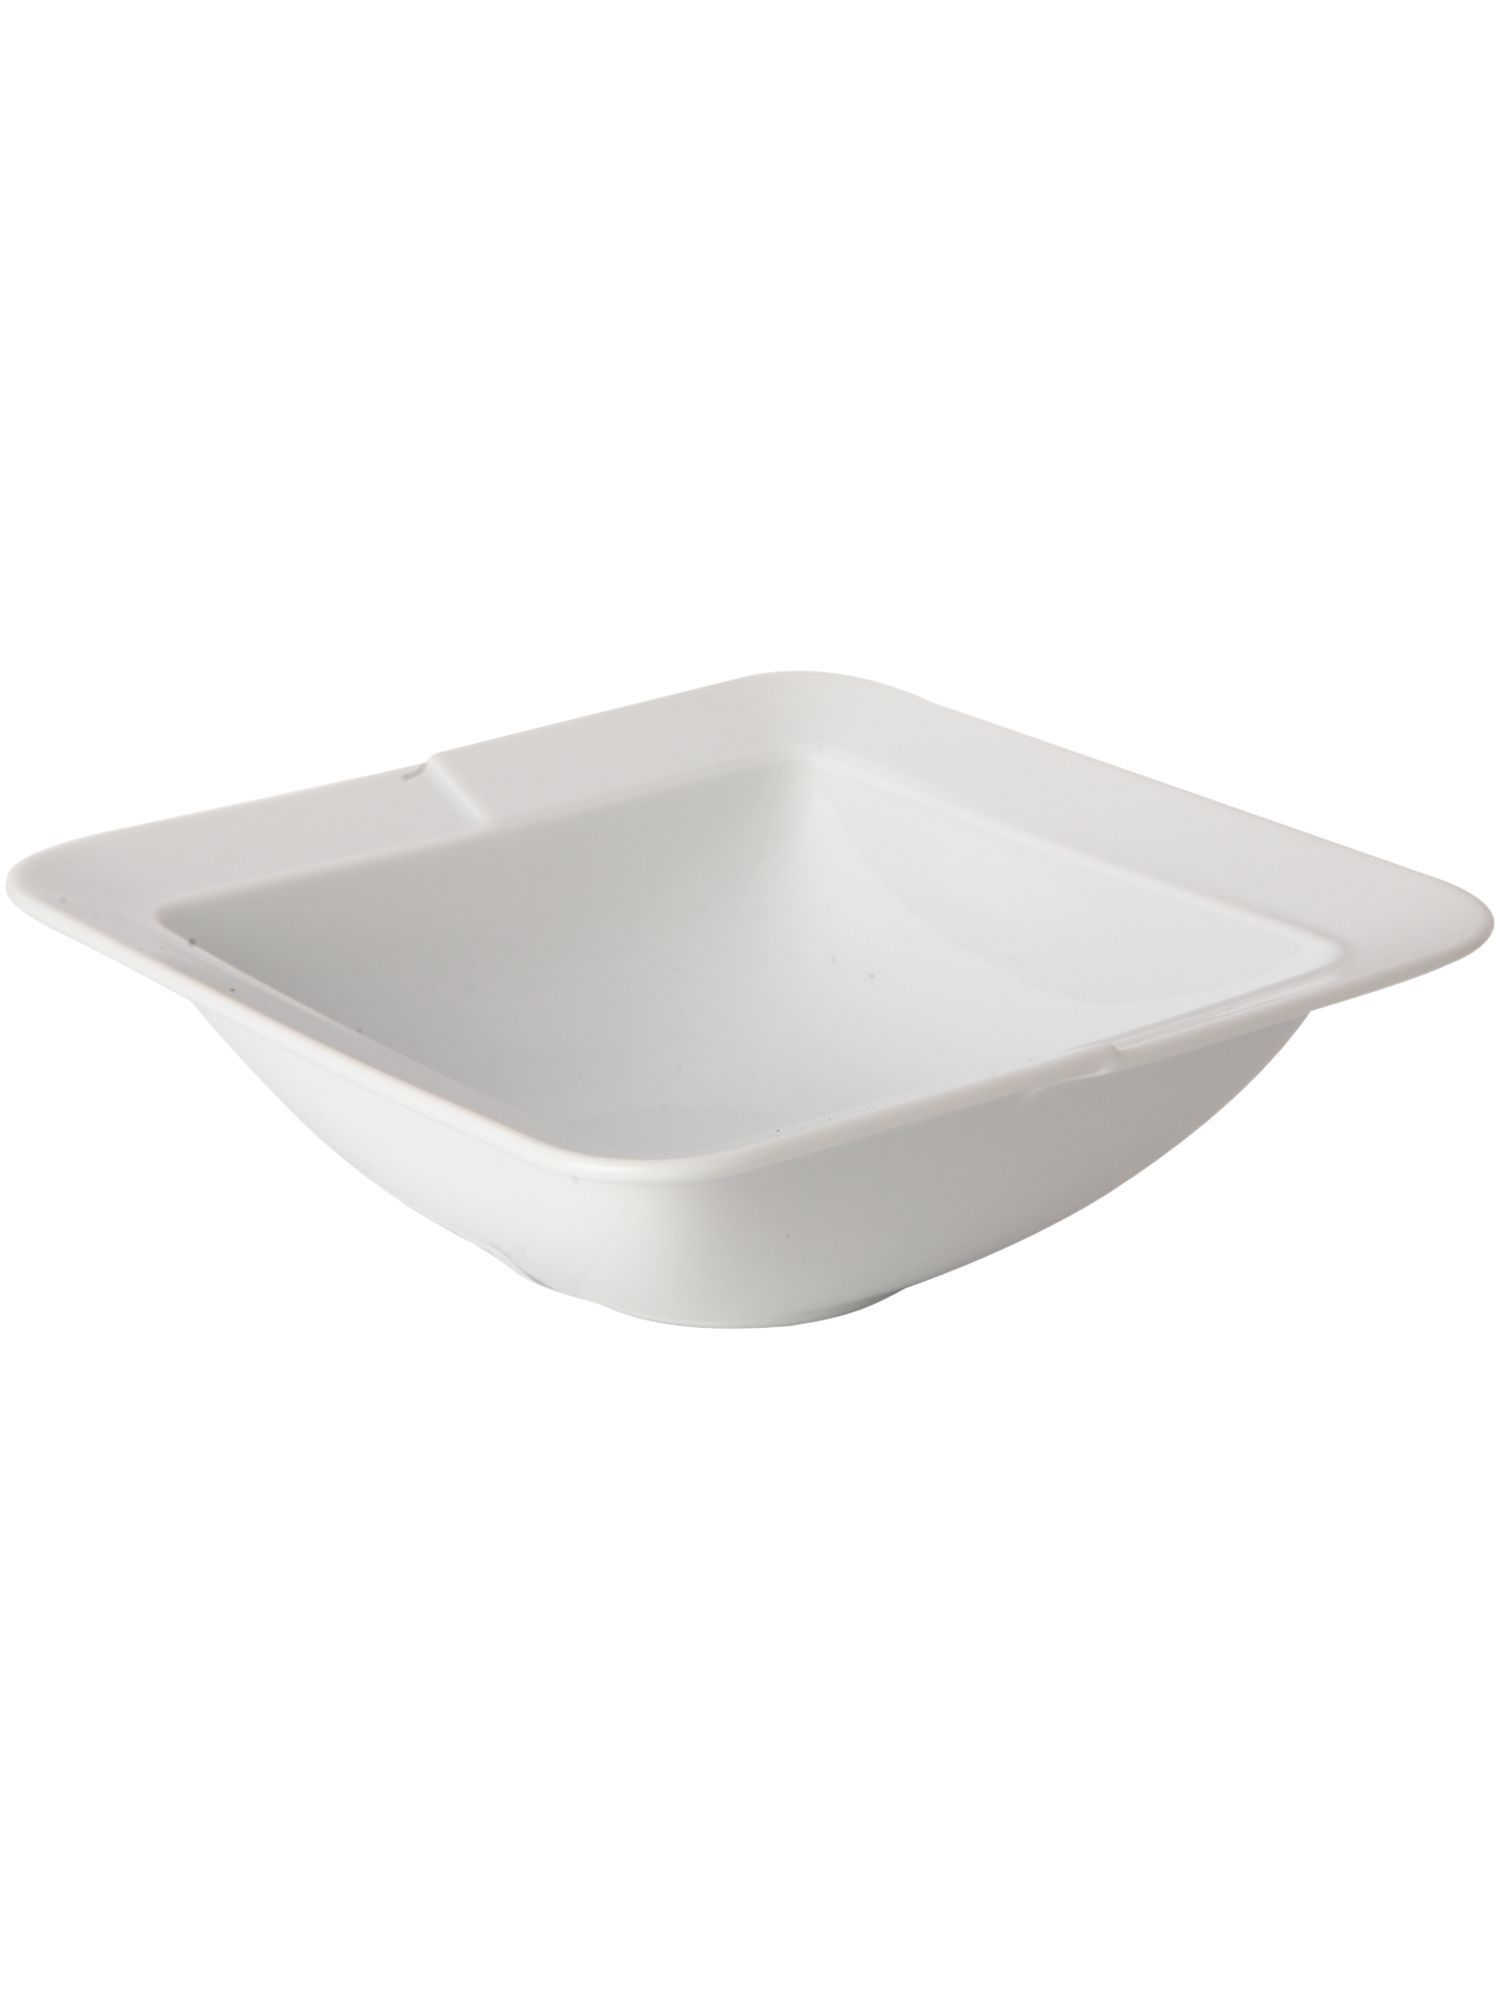 James Martin Dine Squares Cereal Bowl